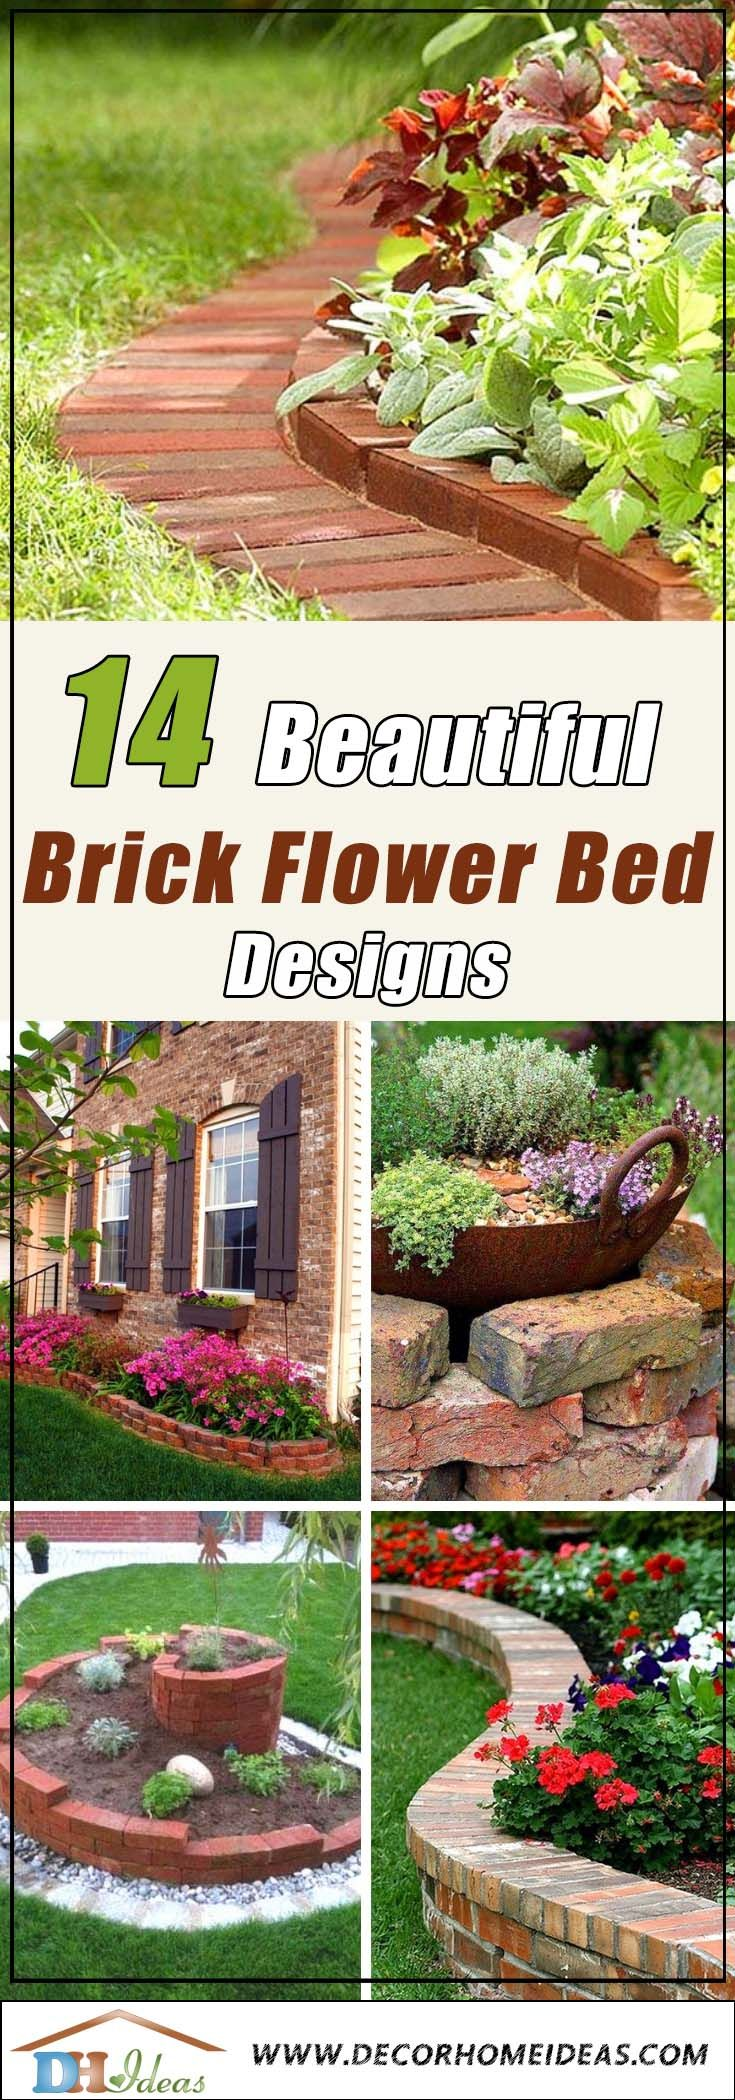 14 Brick Flower Bed Design Ideas You Can Replicate Instantly Decor Home Ideas Brick Flower Bed Flower Bed Designs Flower Beds Backyard flower bed design ideas